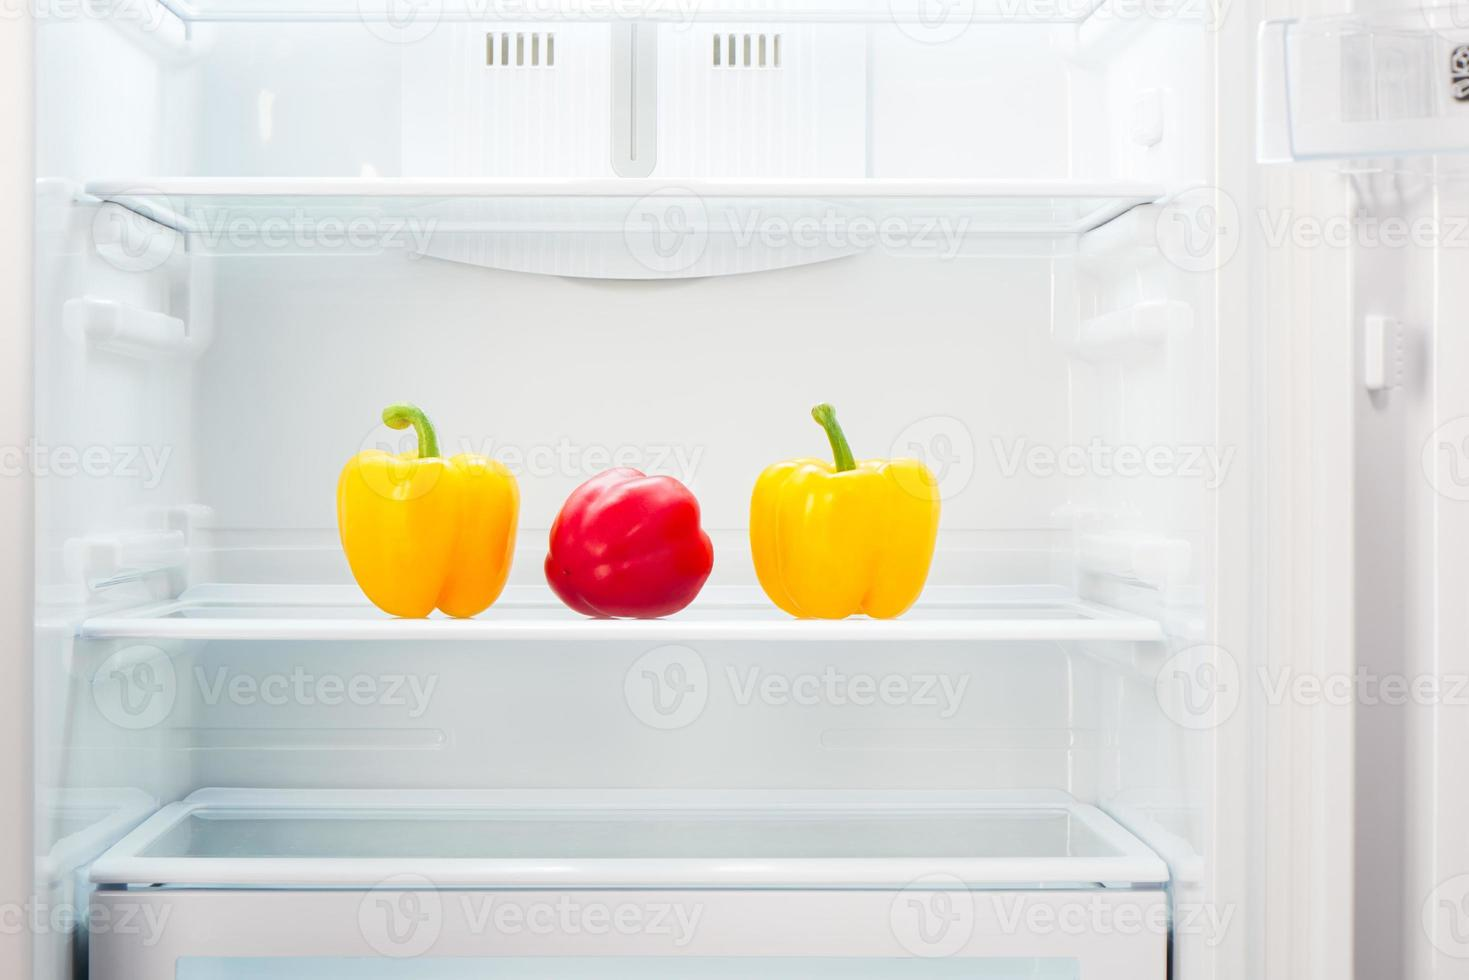 Two yellow with one red peppers on shelf of refrigerator photo